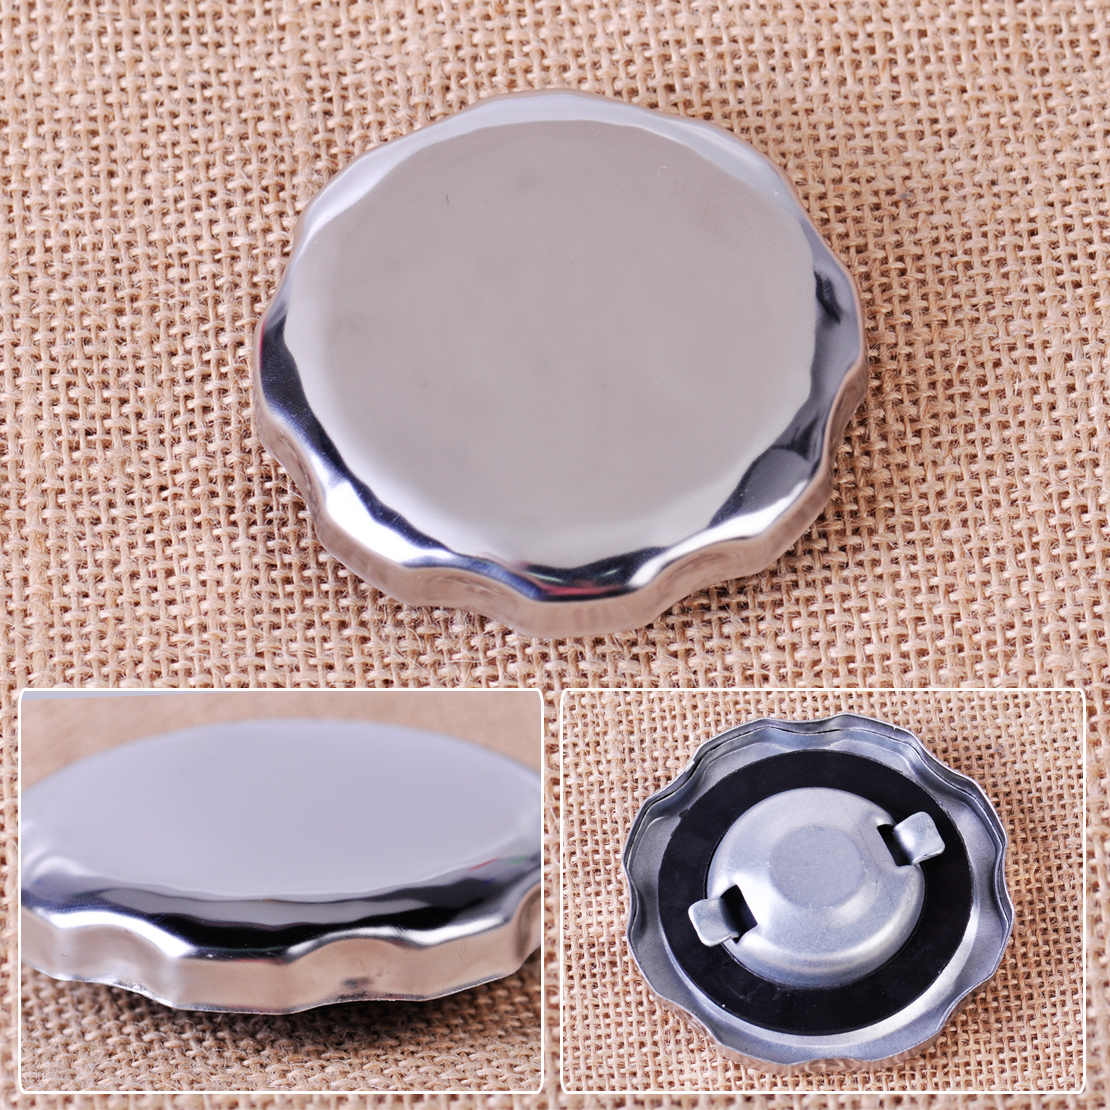 LETAOSK New Chrome Plated Gas Fuel Tank Cap Replacement Fit For Honda GX120 GX160 GX200 GX340 GX390